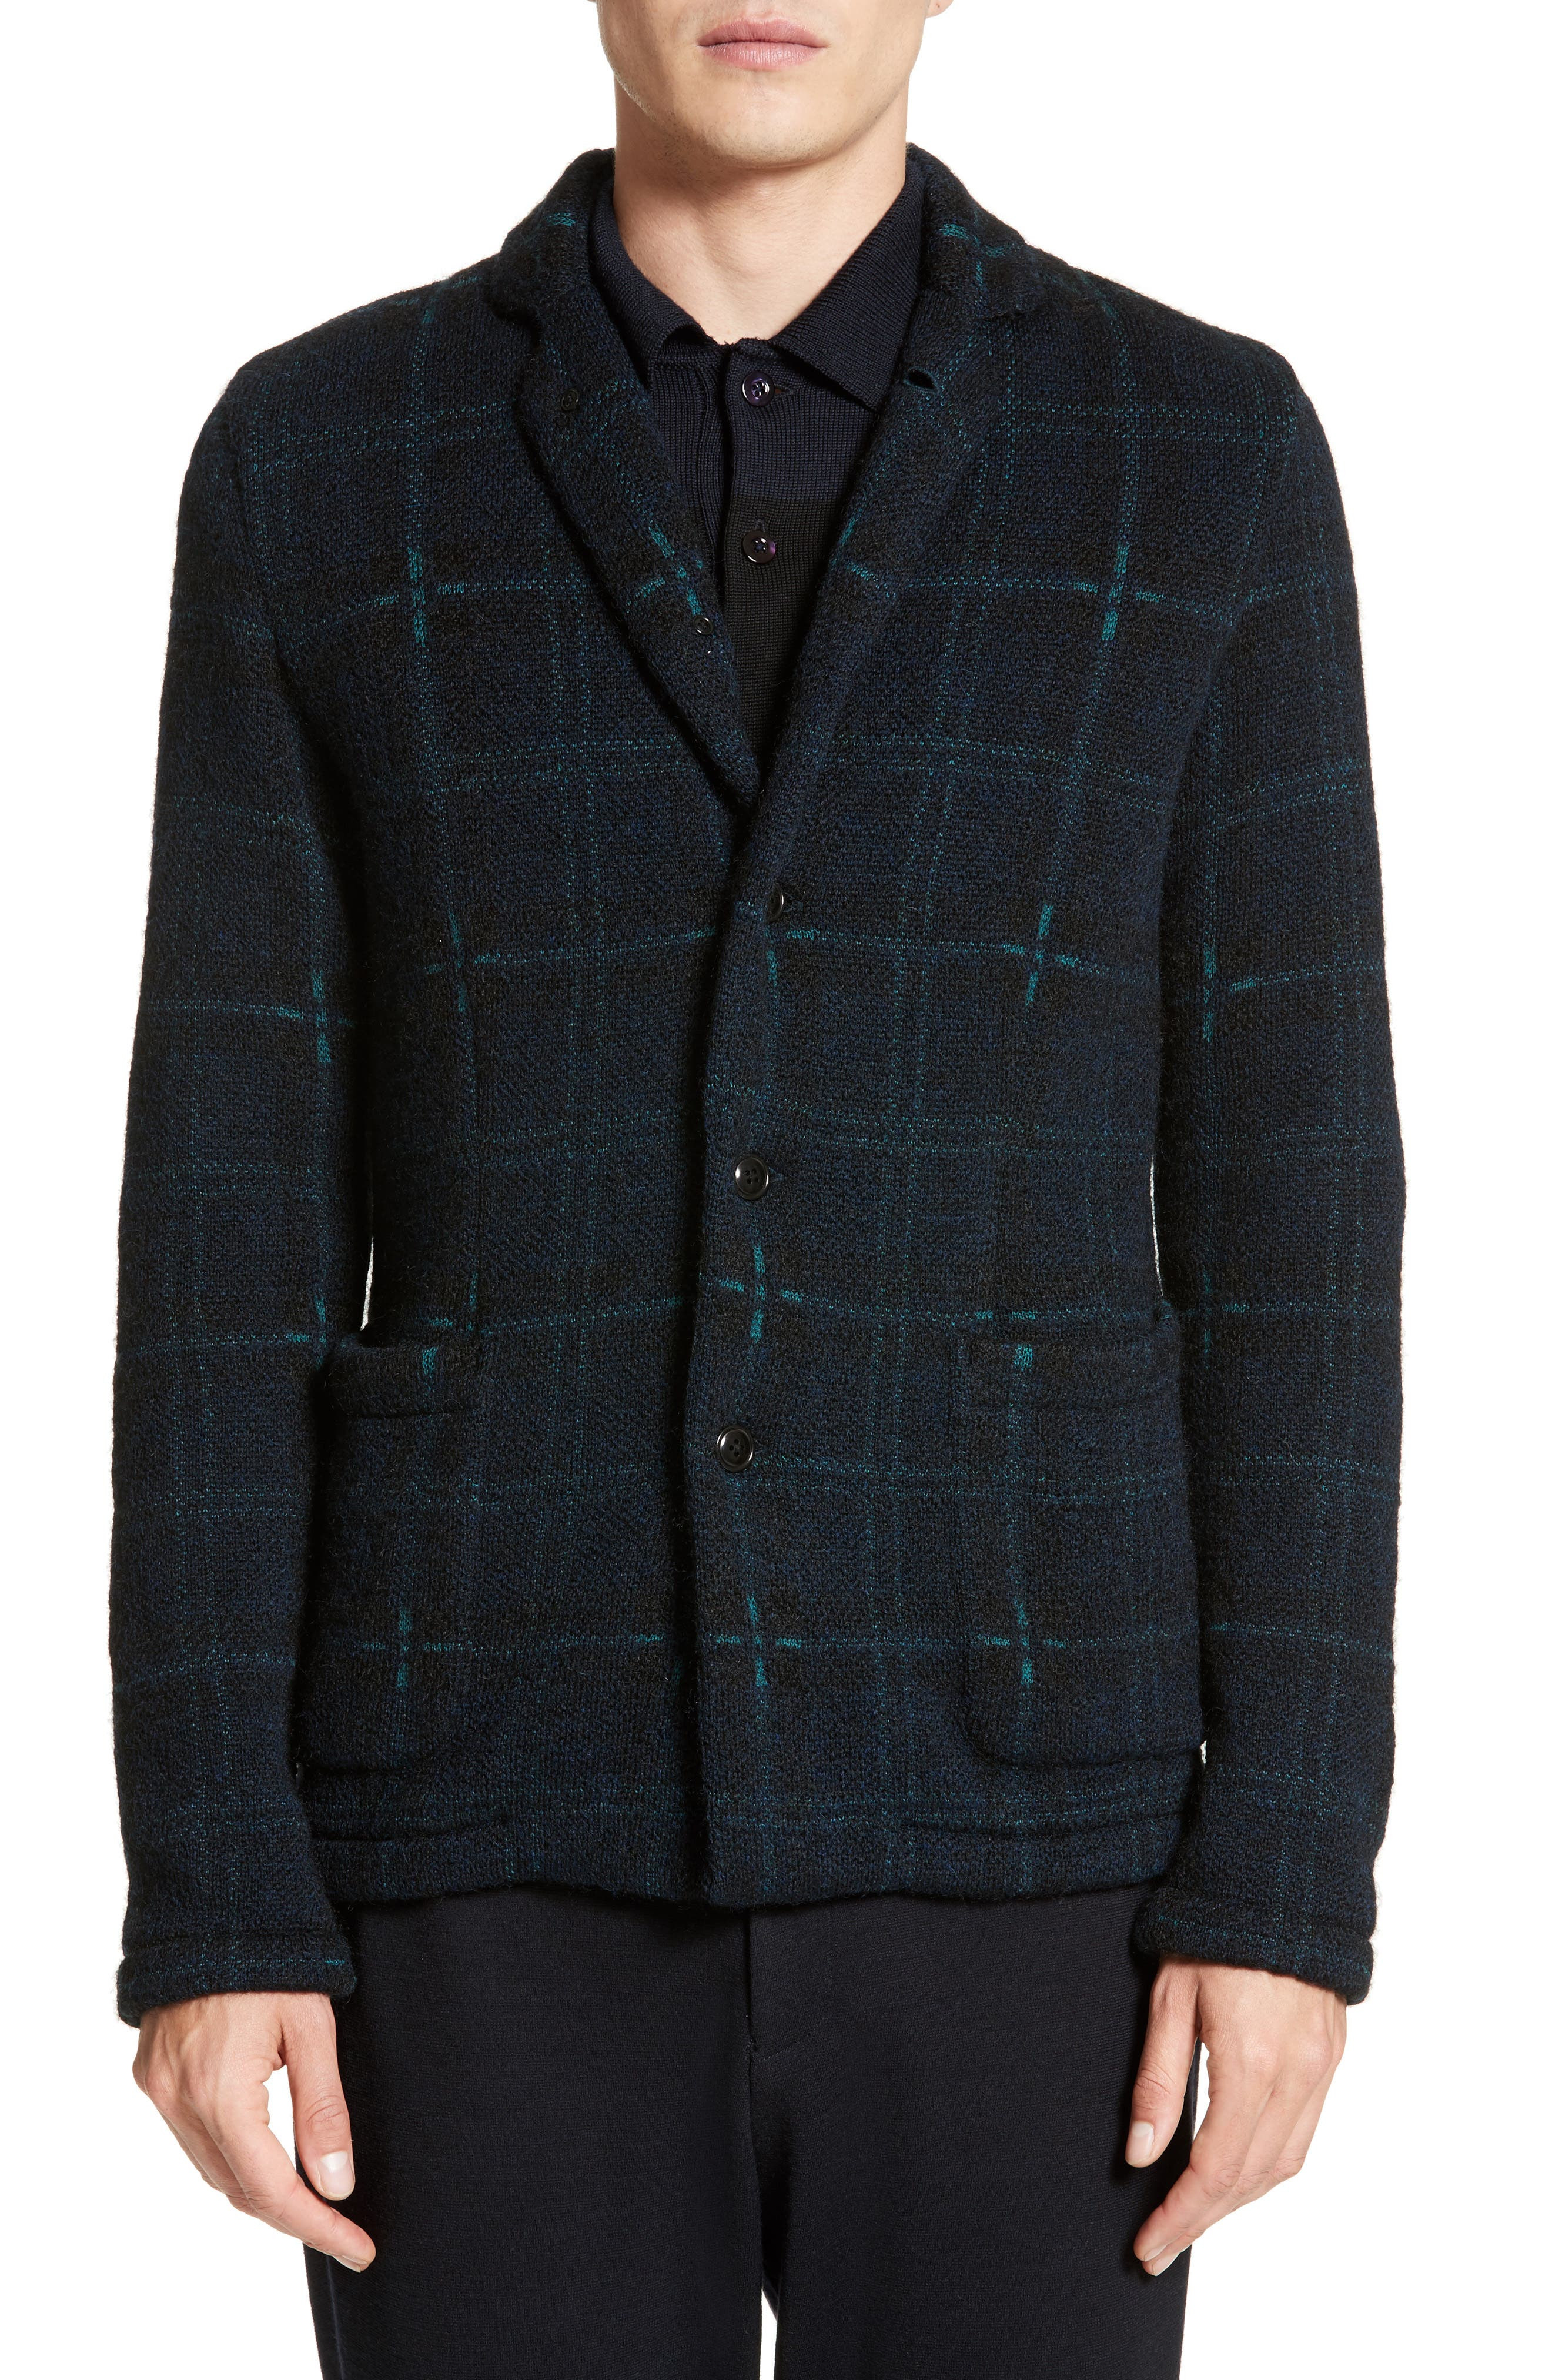 Wool Blend Knit Sportcoat,                         Main,                         color, Navy